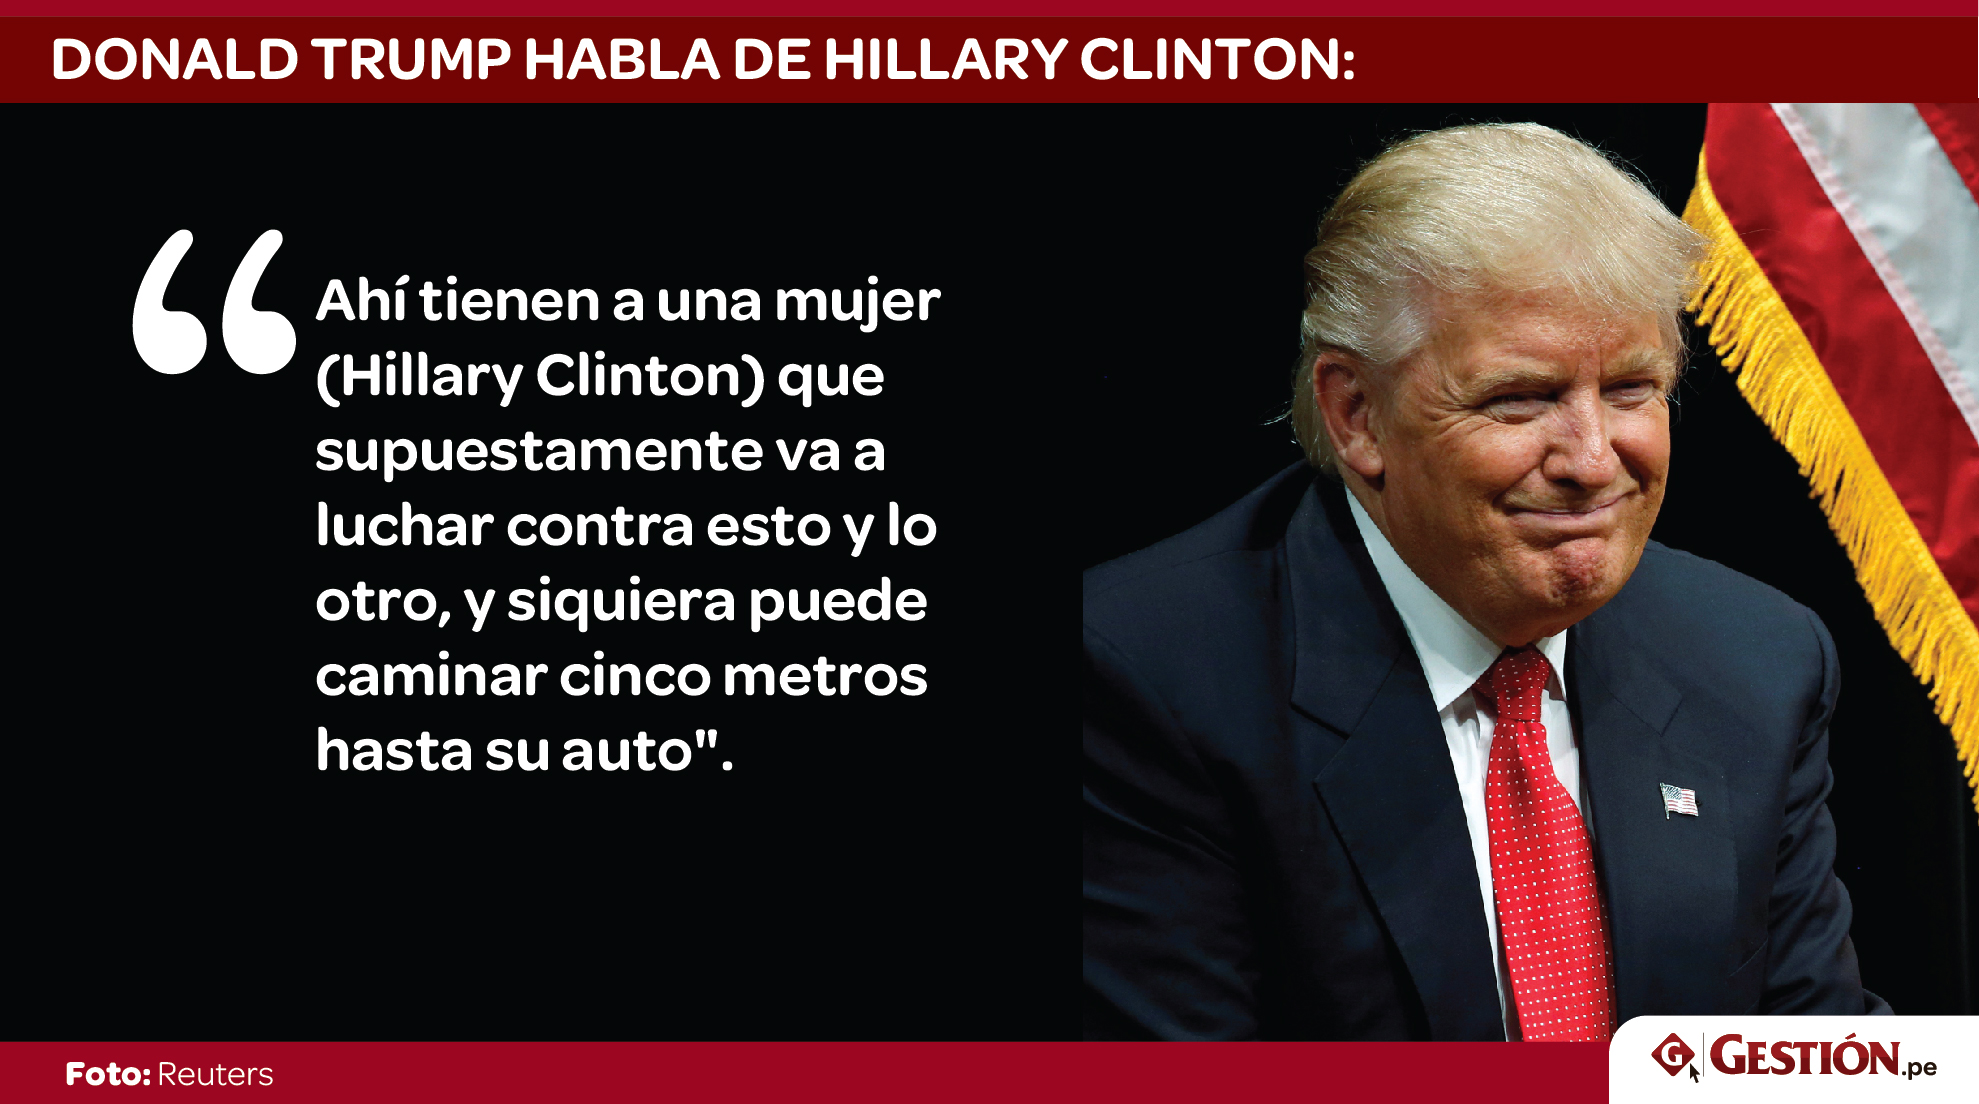 mujeres, DONALD TRUMP, FRASES, comportamiento